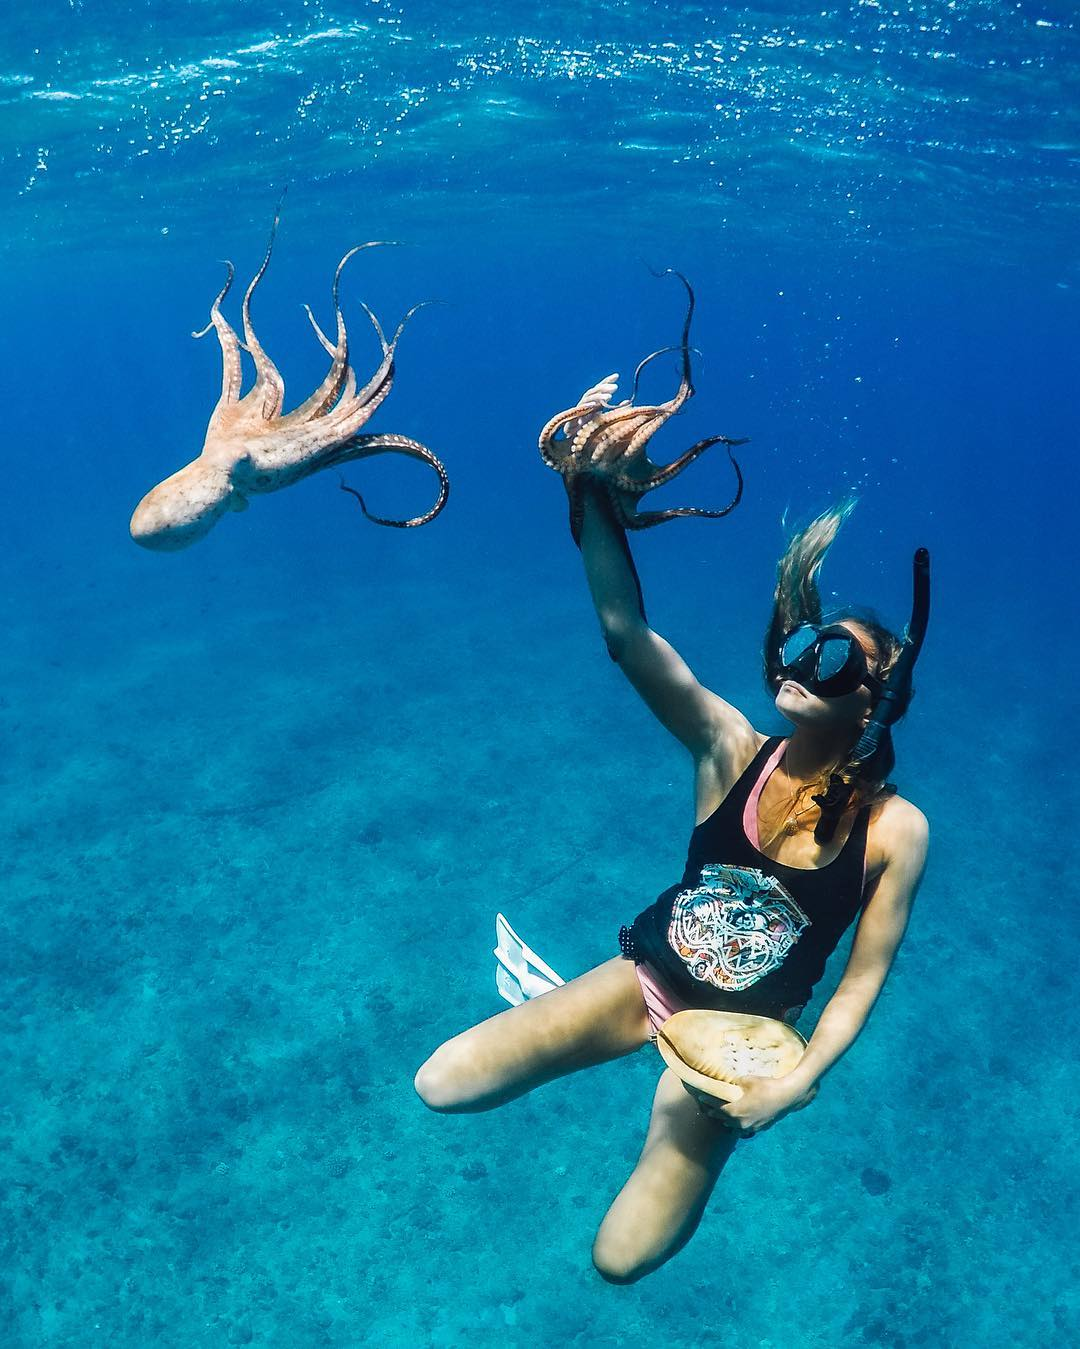 #WCW + #GoProGirl @Keyana.poki  Aloha, My name is Keyana Poki and I am the host of a new television series called 'Under the Sea with Key,' where we take our audience around the most beautiful scenes Hawaii has to offer. I am just a simple girl, lucky...